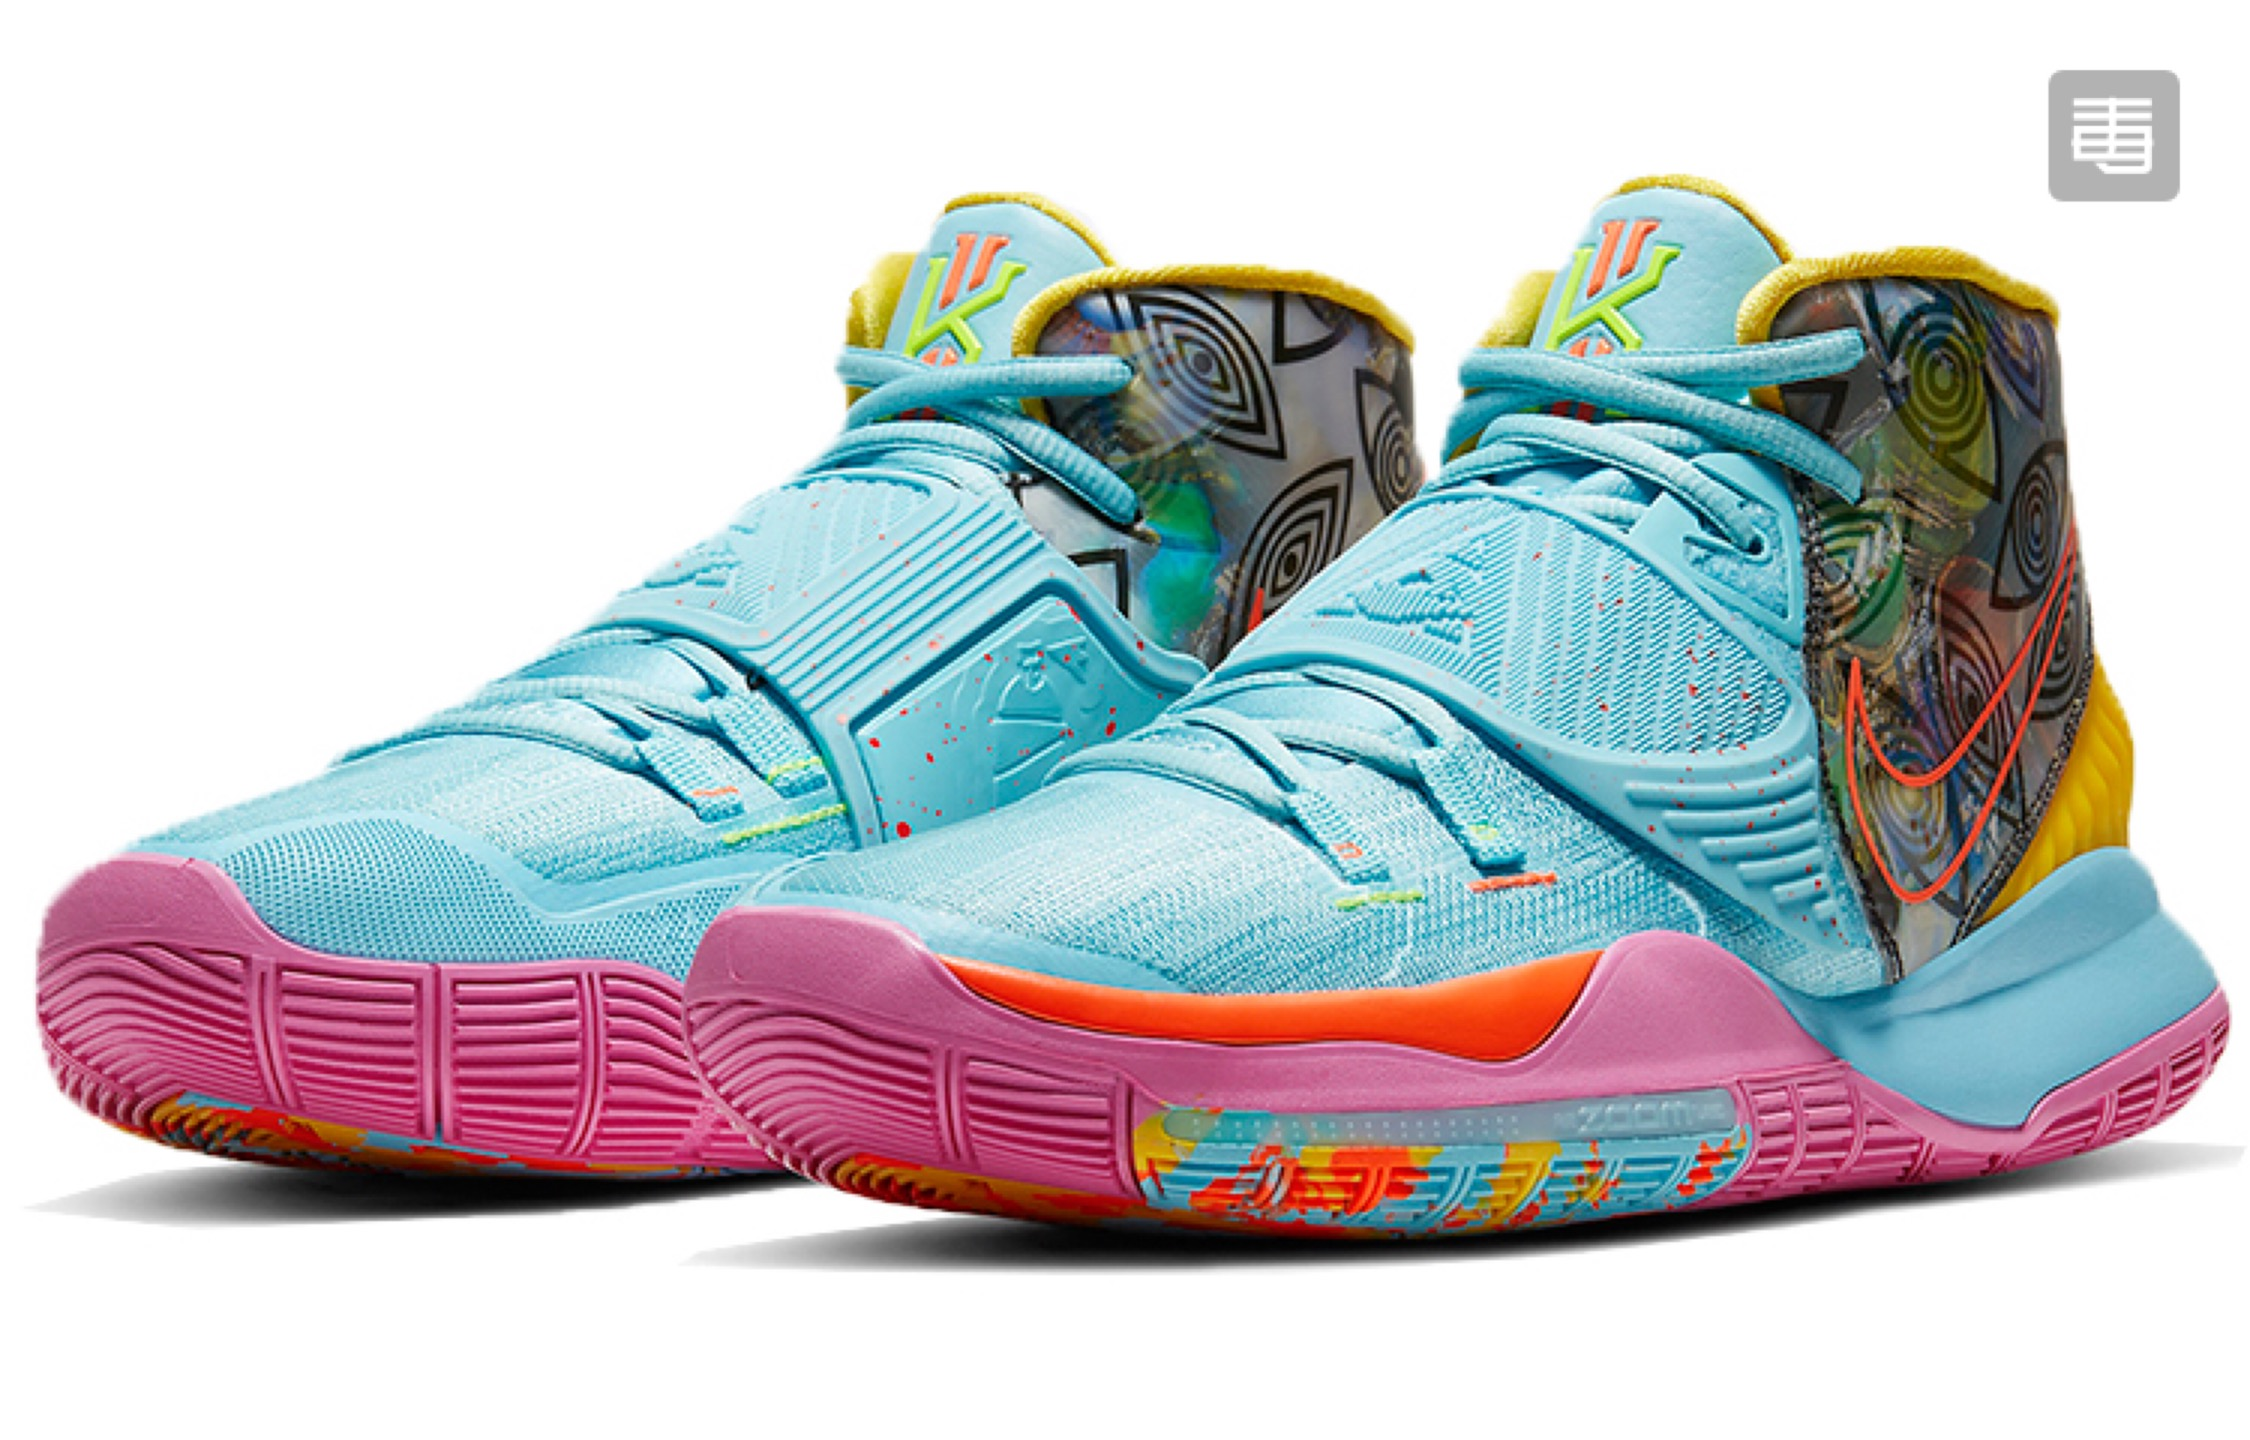 Nike Kyrie 6 Miami Blue Pink Yellow Shoes